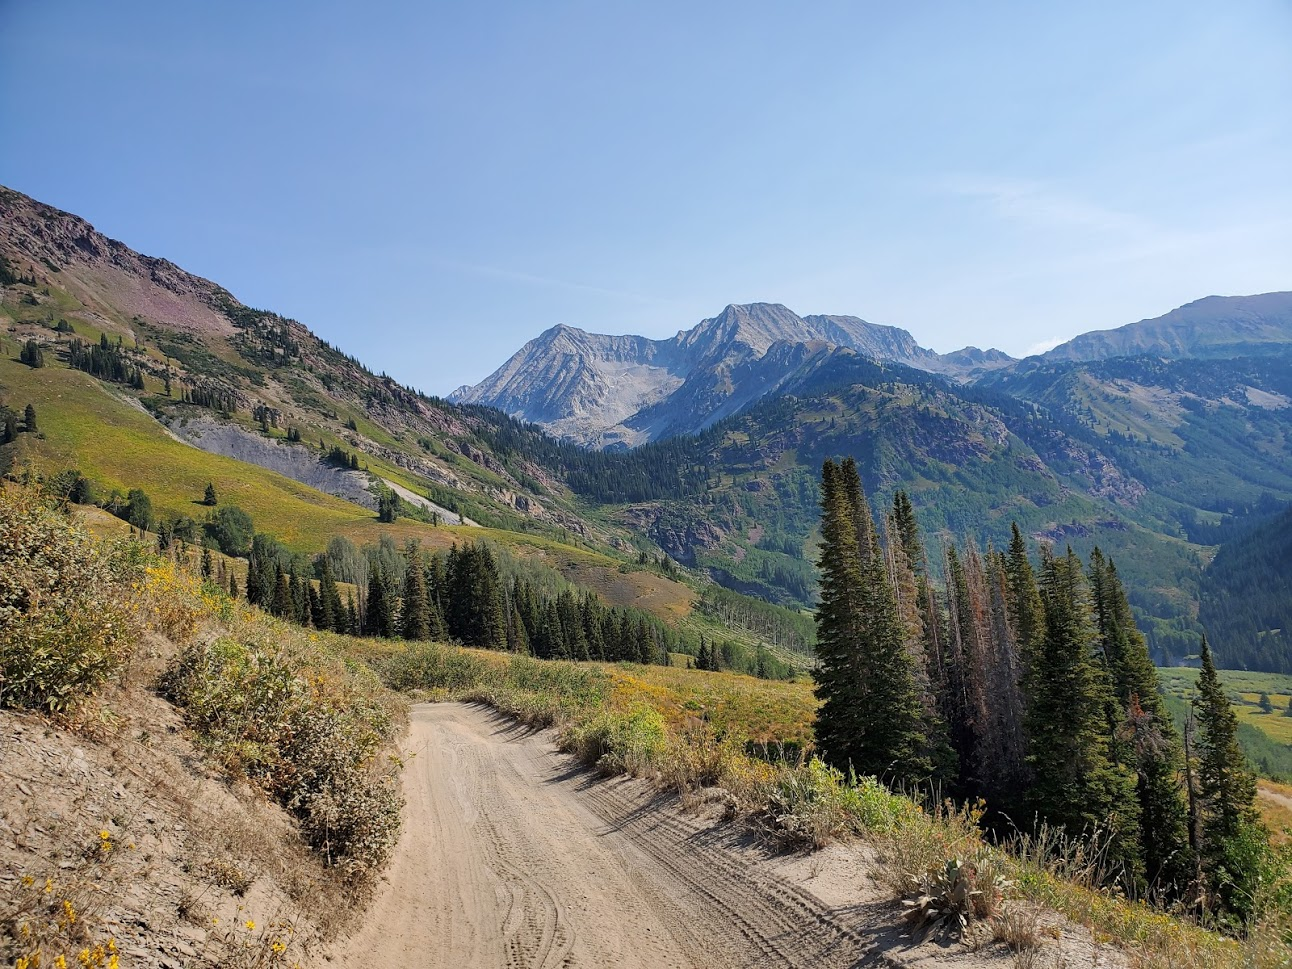 Enforcement, education campaign to debut on Lead King Loop this summer near Marble - Aspen Journalism